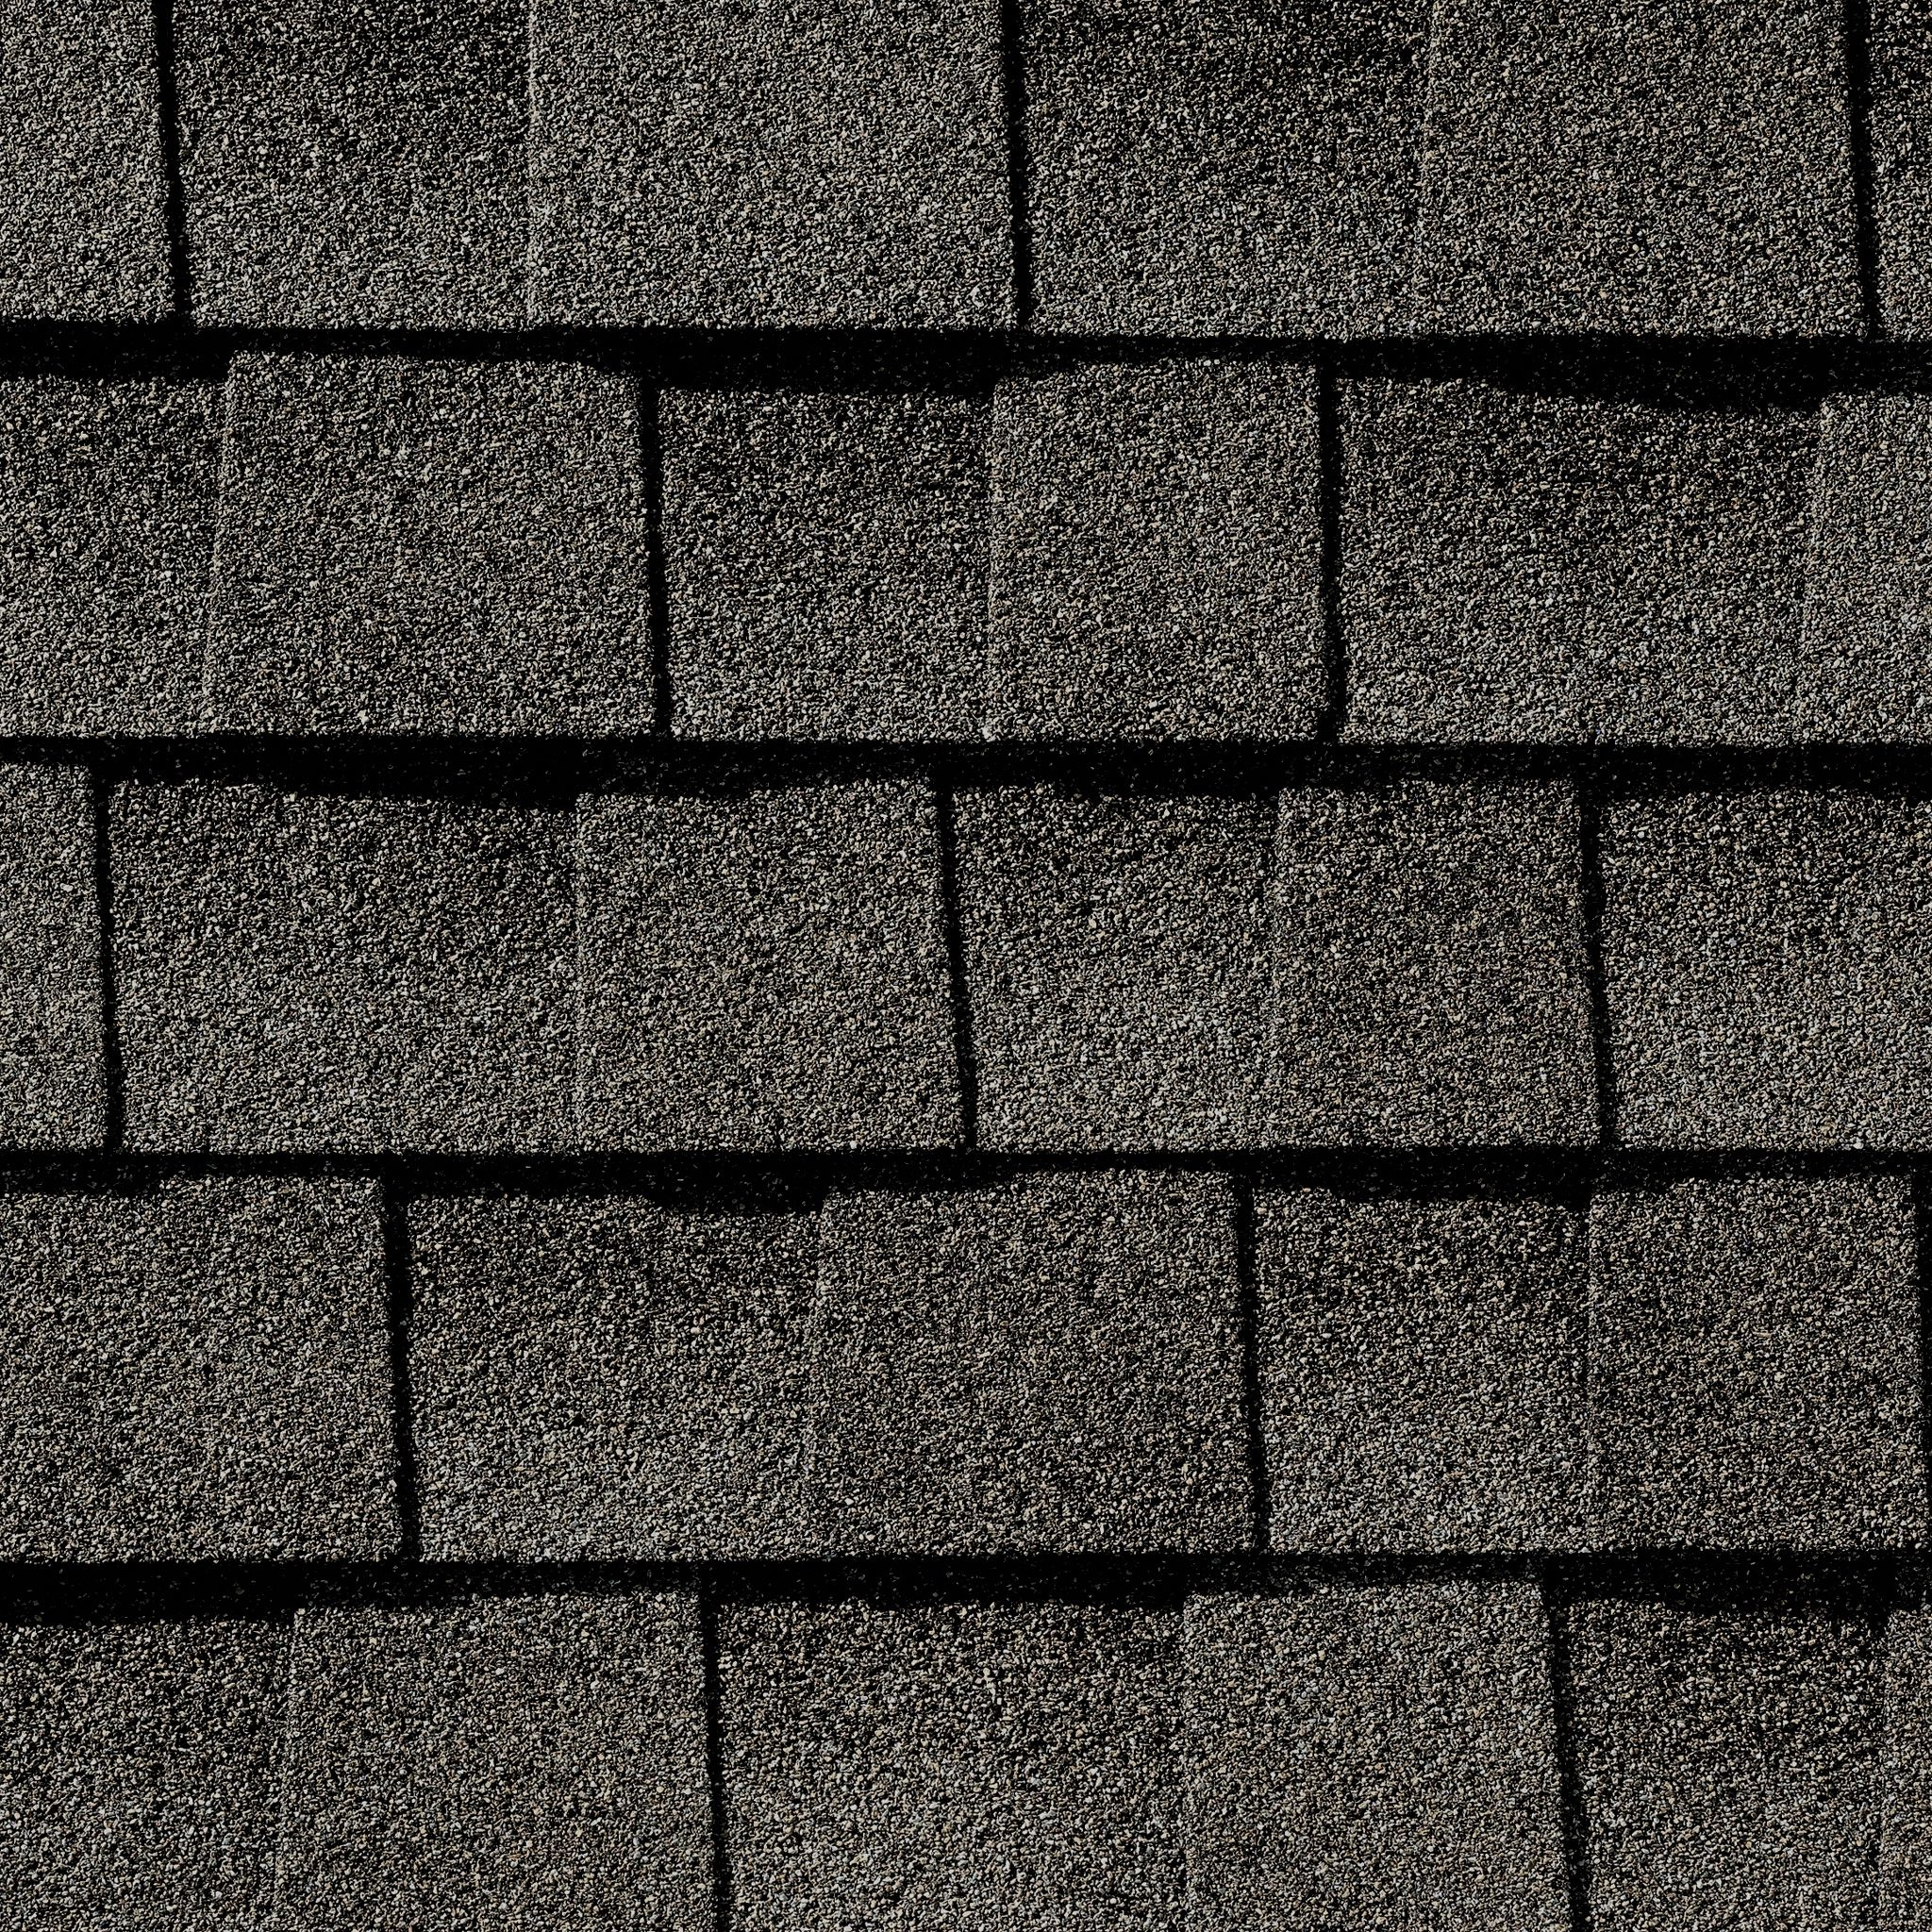 Timberline HD Canadian Driftwood Shingles Pinterest